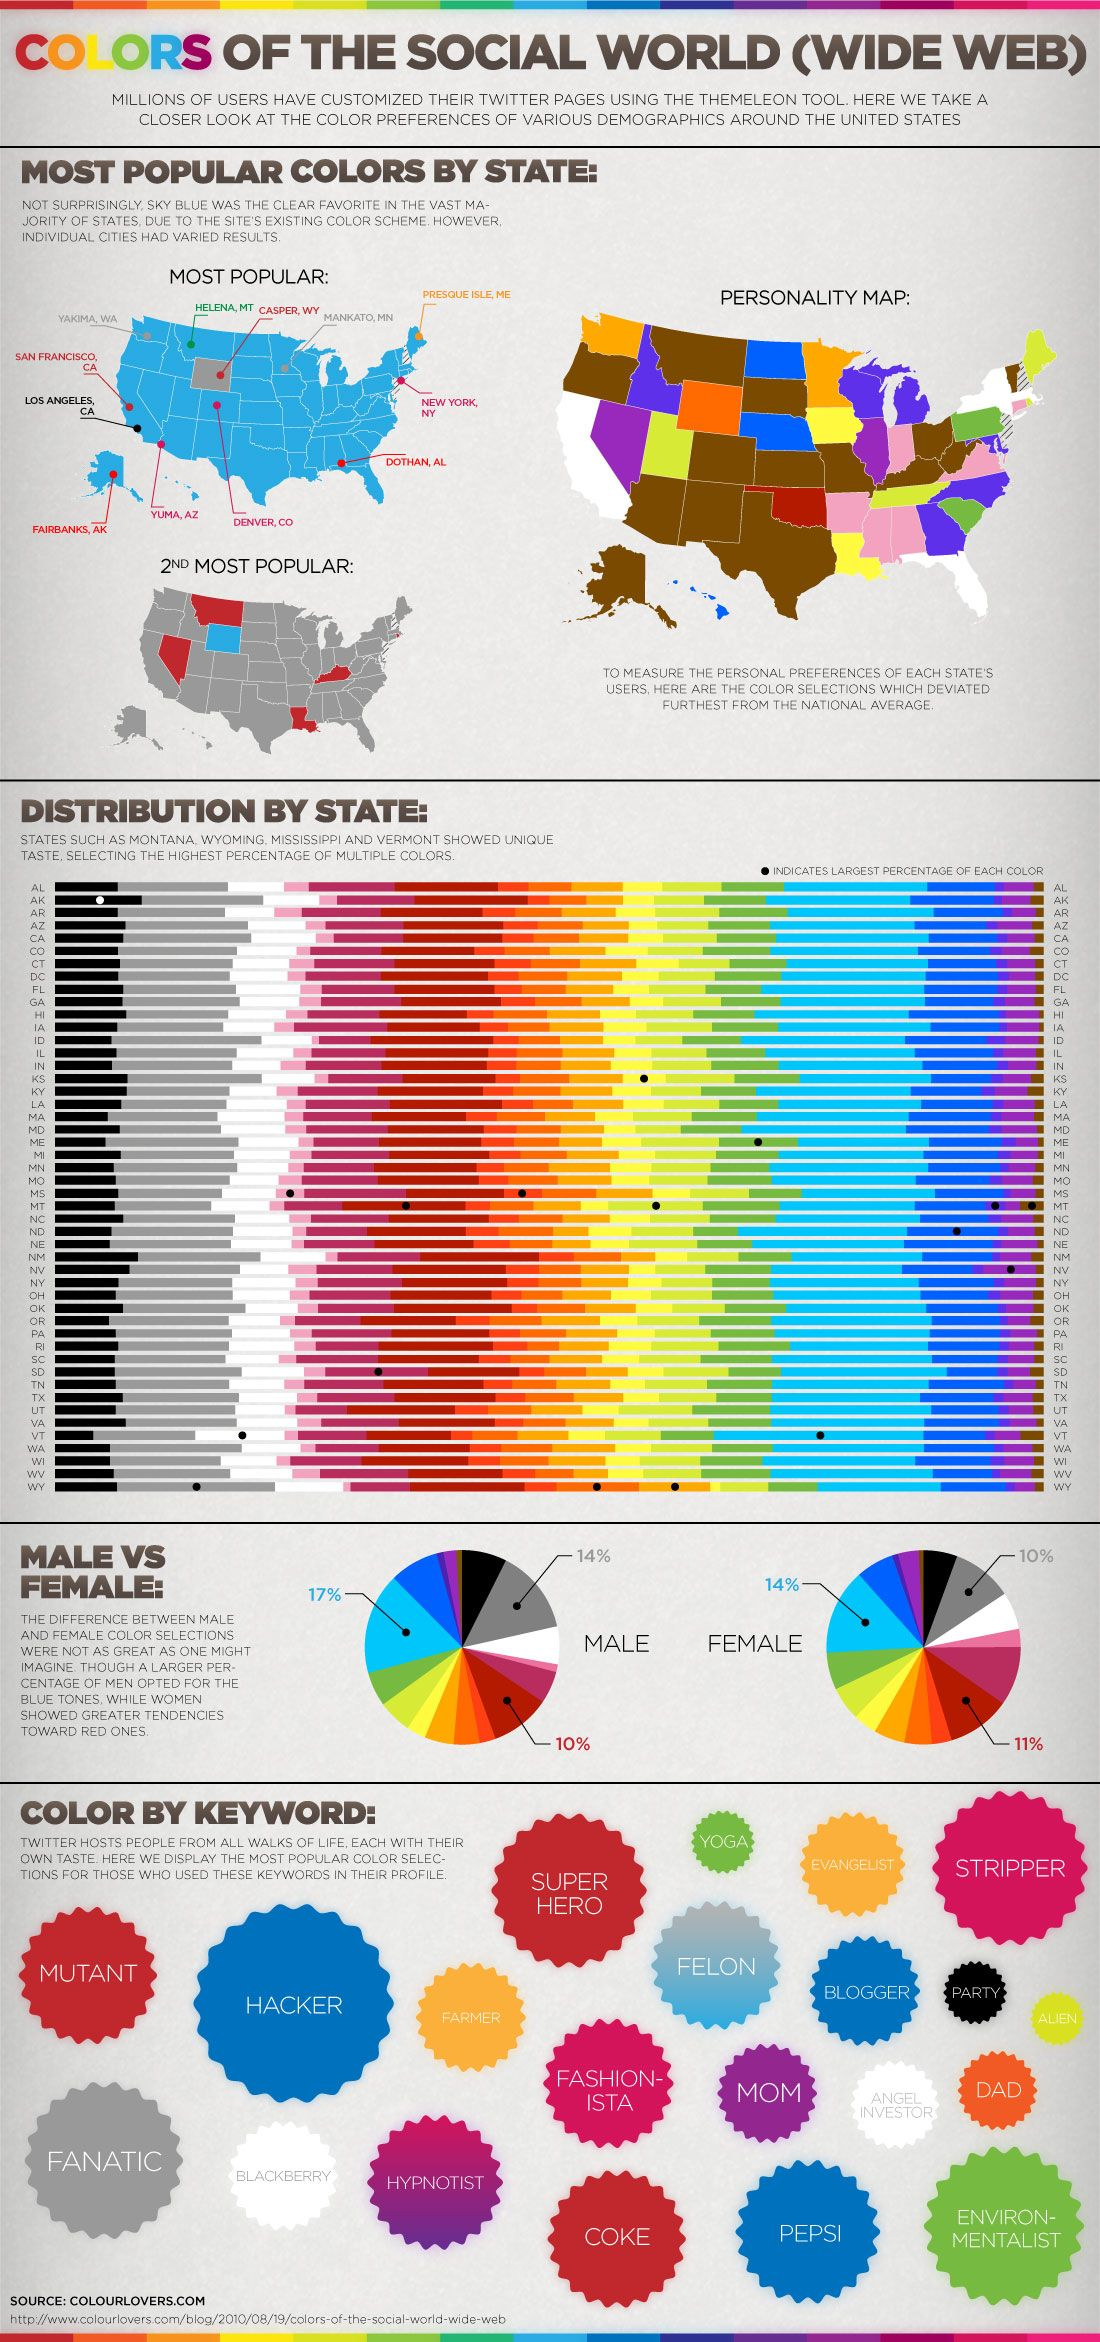 Color preferences of twitter users divided by geography. Note Iowa's pension for yellow.